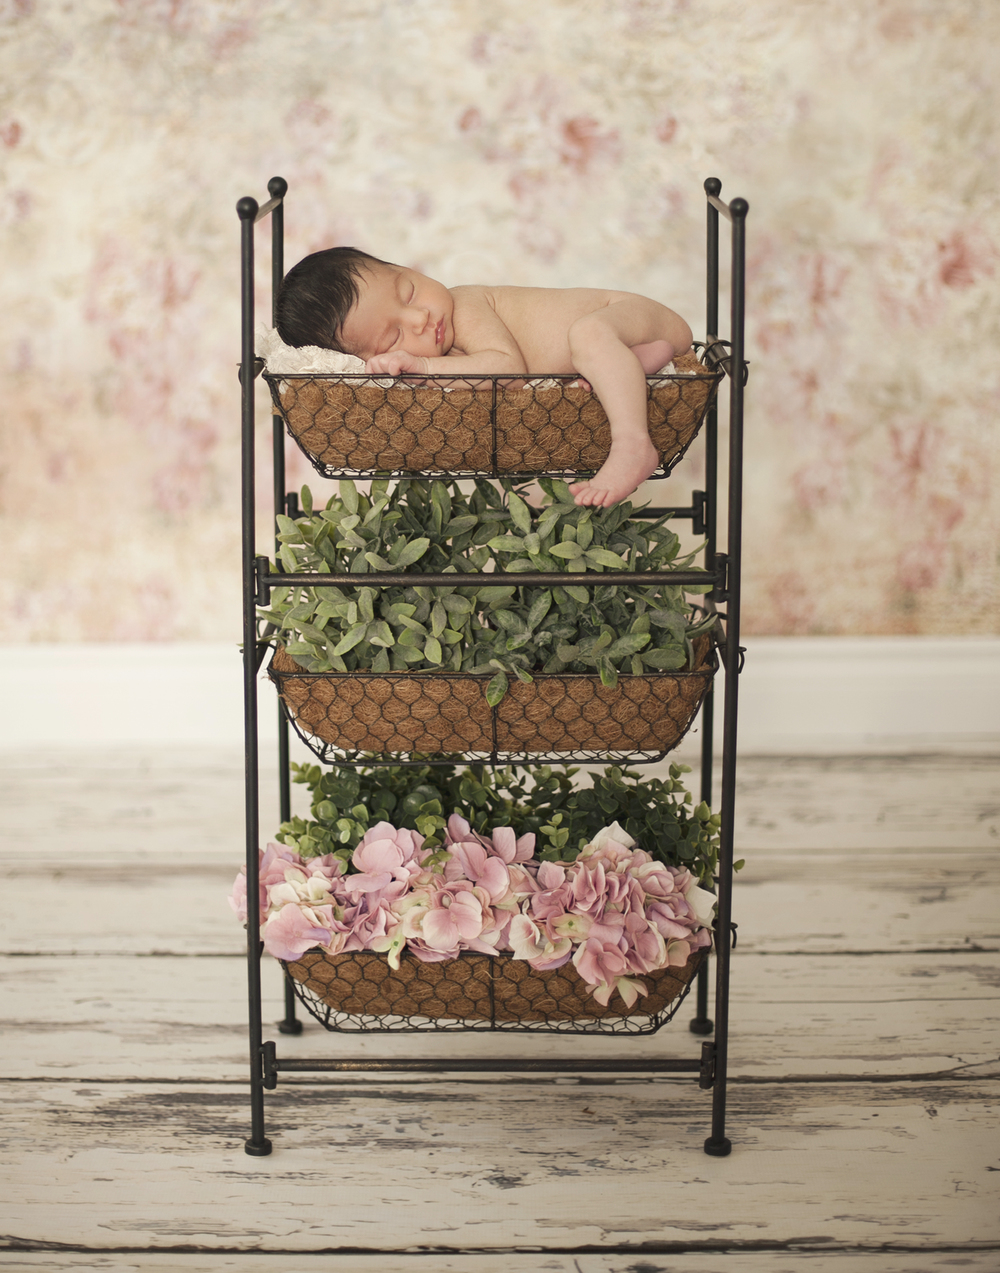 Sono Photography, Baby, New Born Photography, Portrait Studio, Flowers, Baby Garden